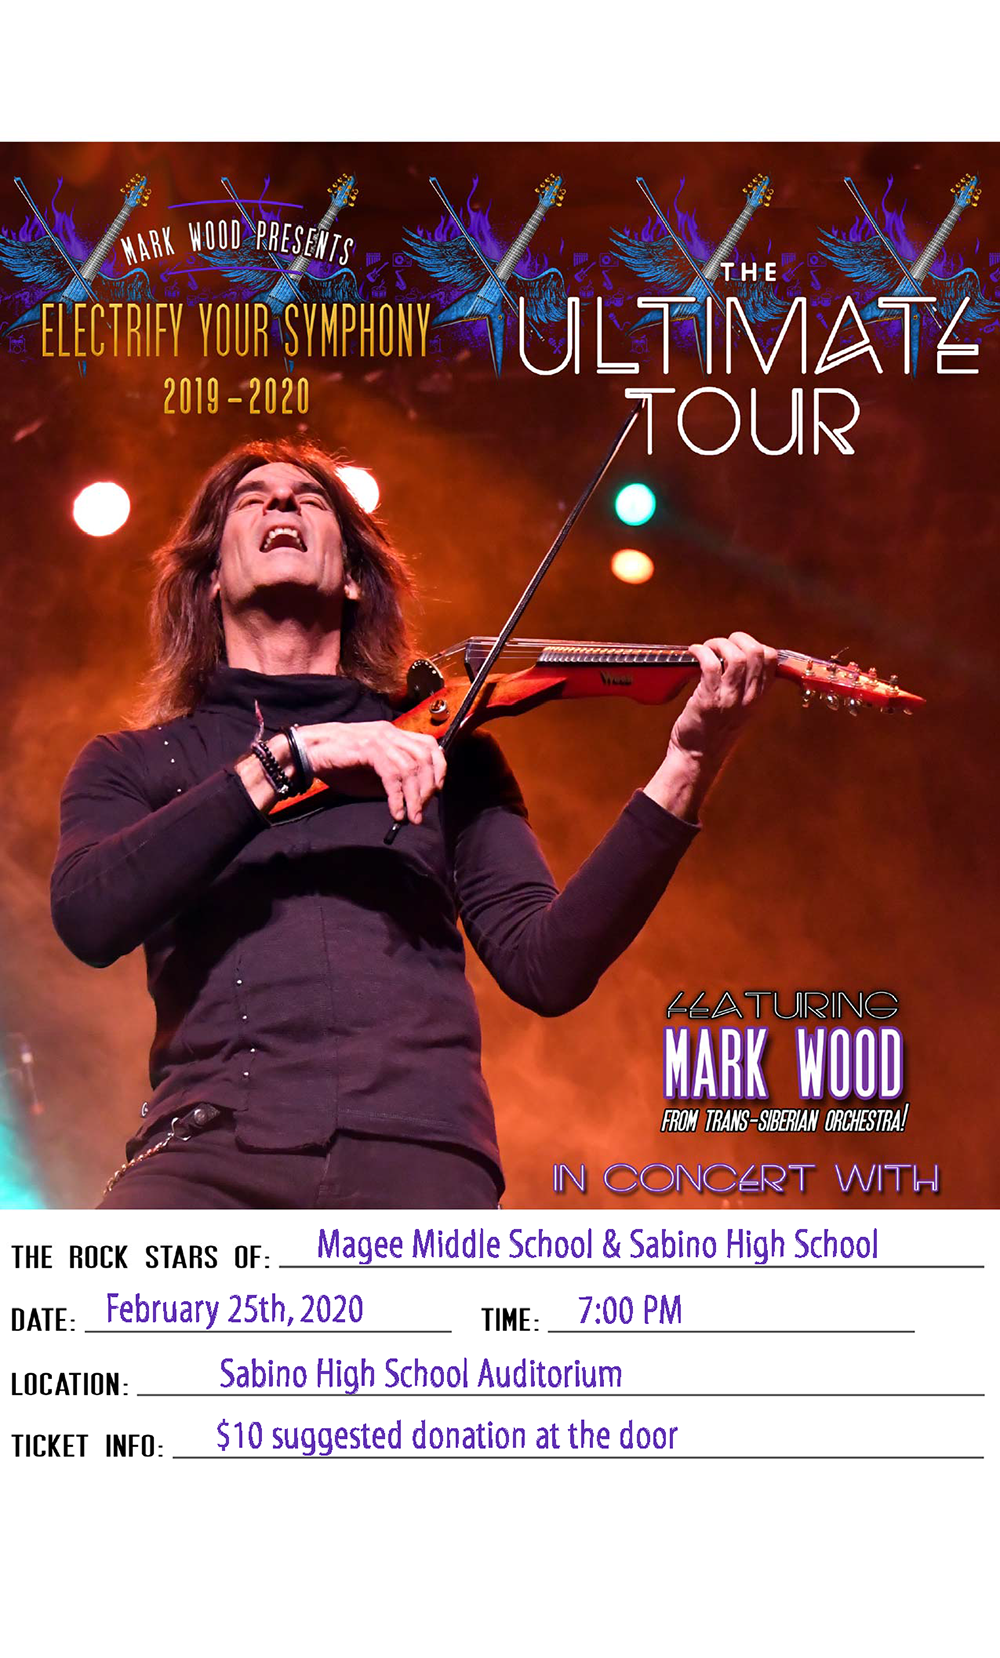 Electrify Your Symphony At Tucson Unified School District Poster With Date And Time Of Performance